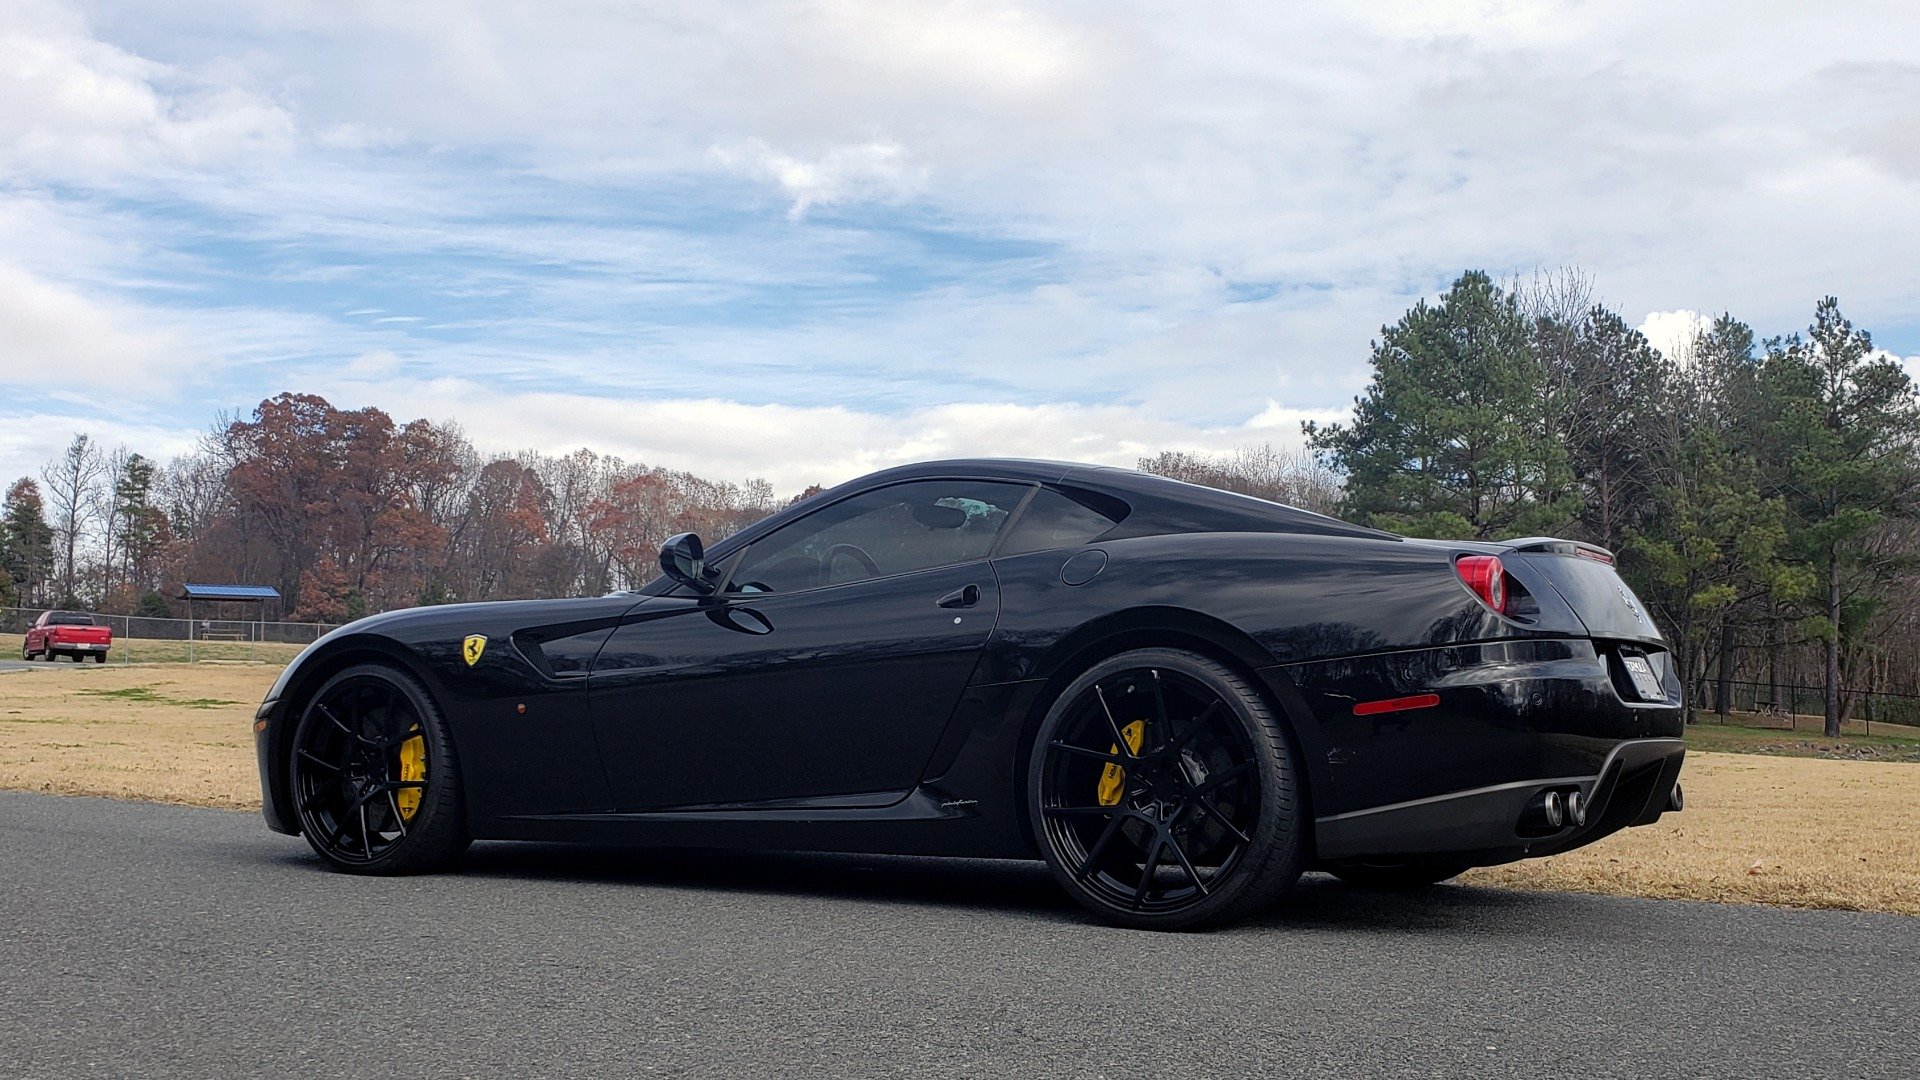 Used 2007 Ferrari 599 GTB FIORANO HGTE / V12 / F1 TRANS / NAV / BOSE / CUSTOM WHEELS for sale Sold at Formula Imports in Charlotte NC 28227 7